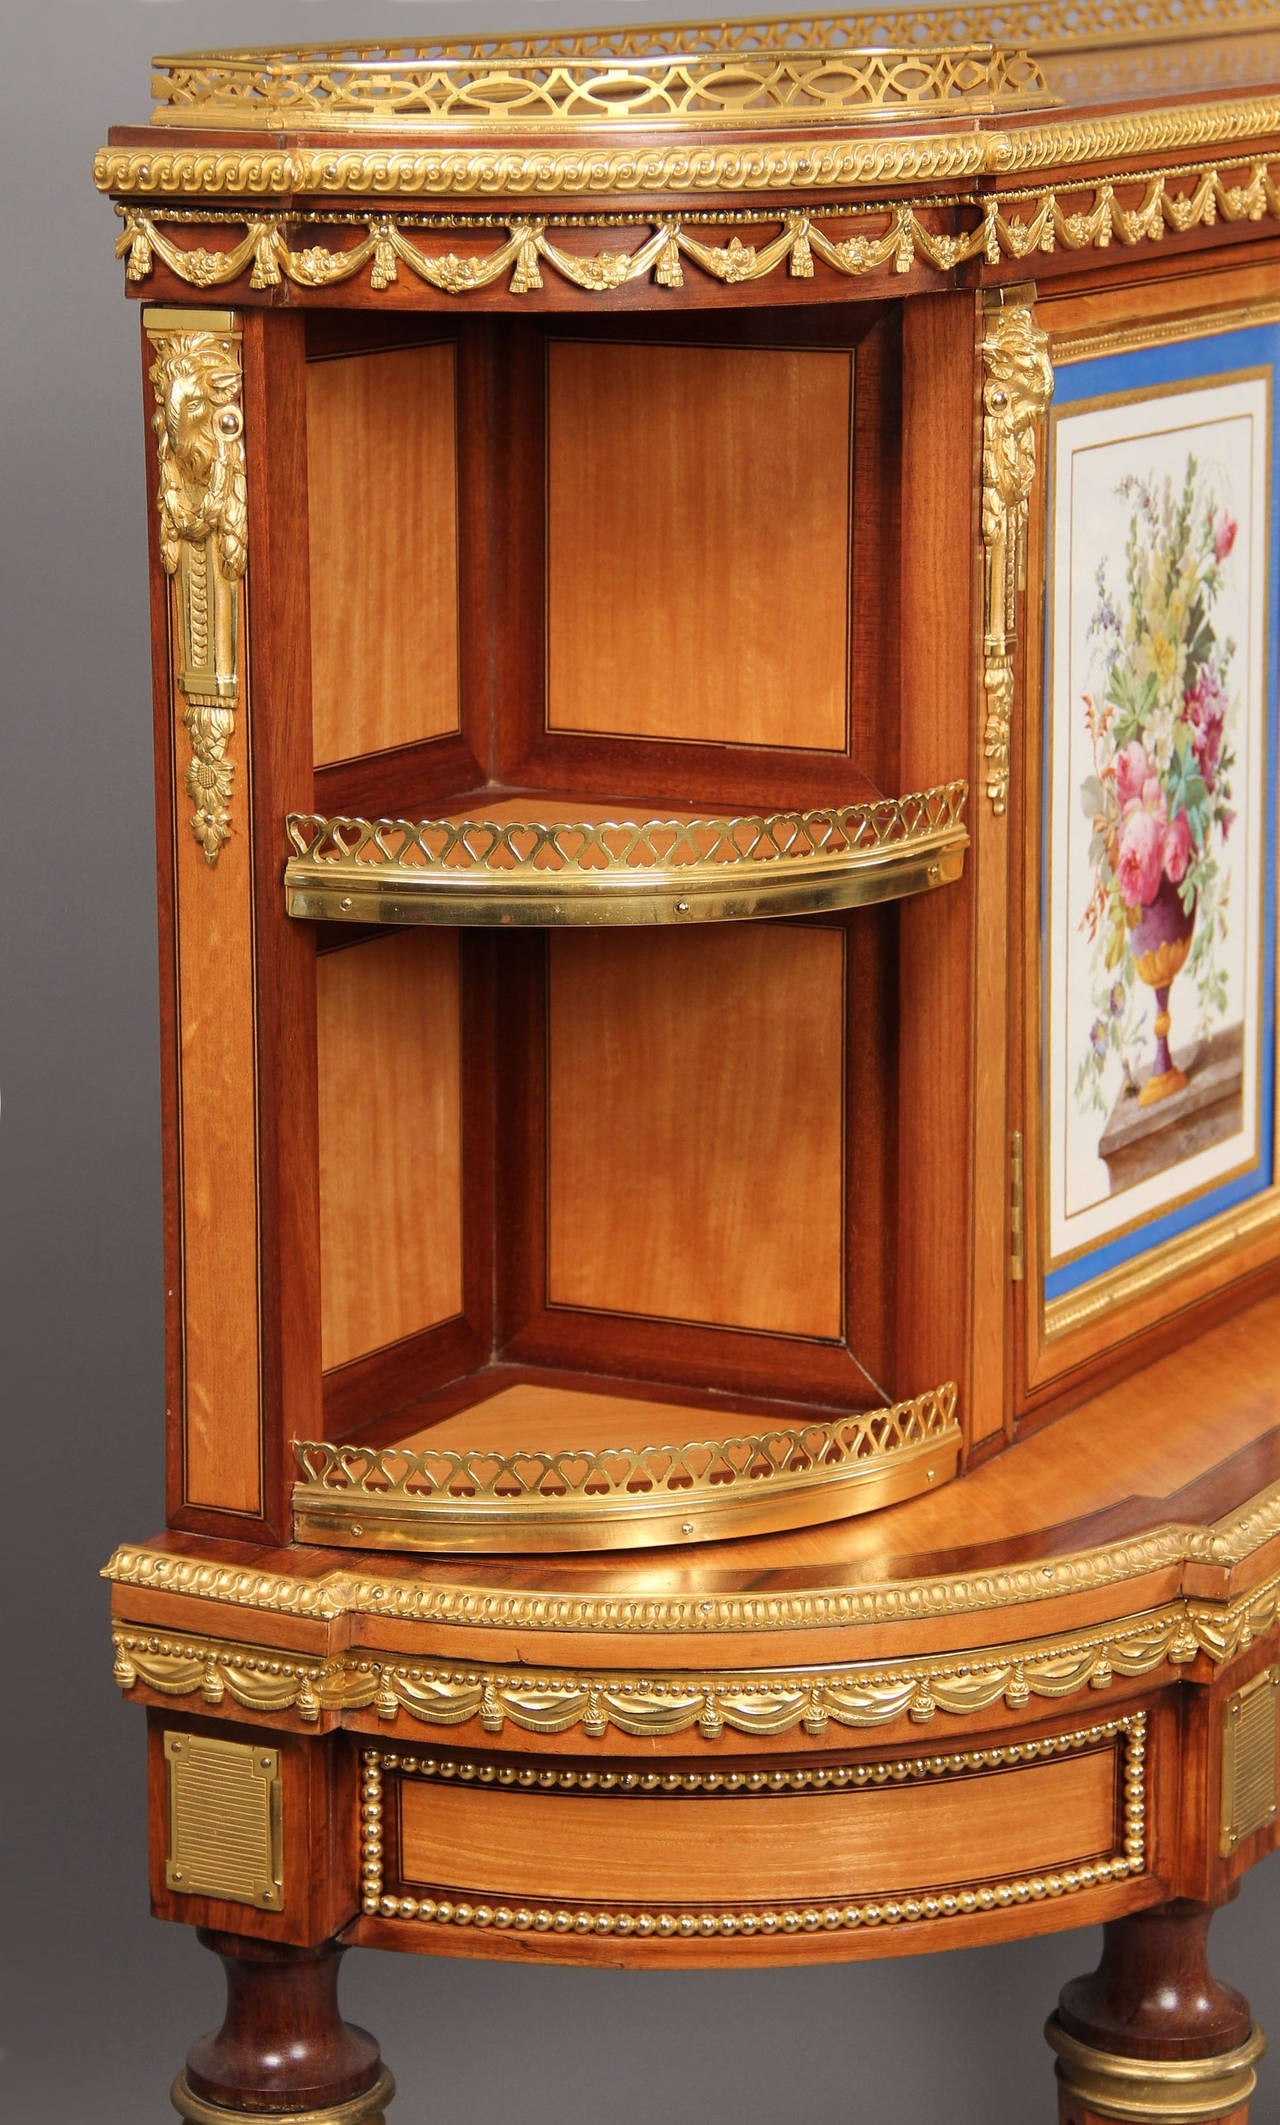 English Fine Pair of Late 19th Century Bronze and Sevres Porcelain Cabinets by Gillows For Sale